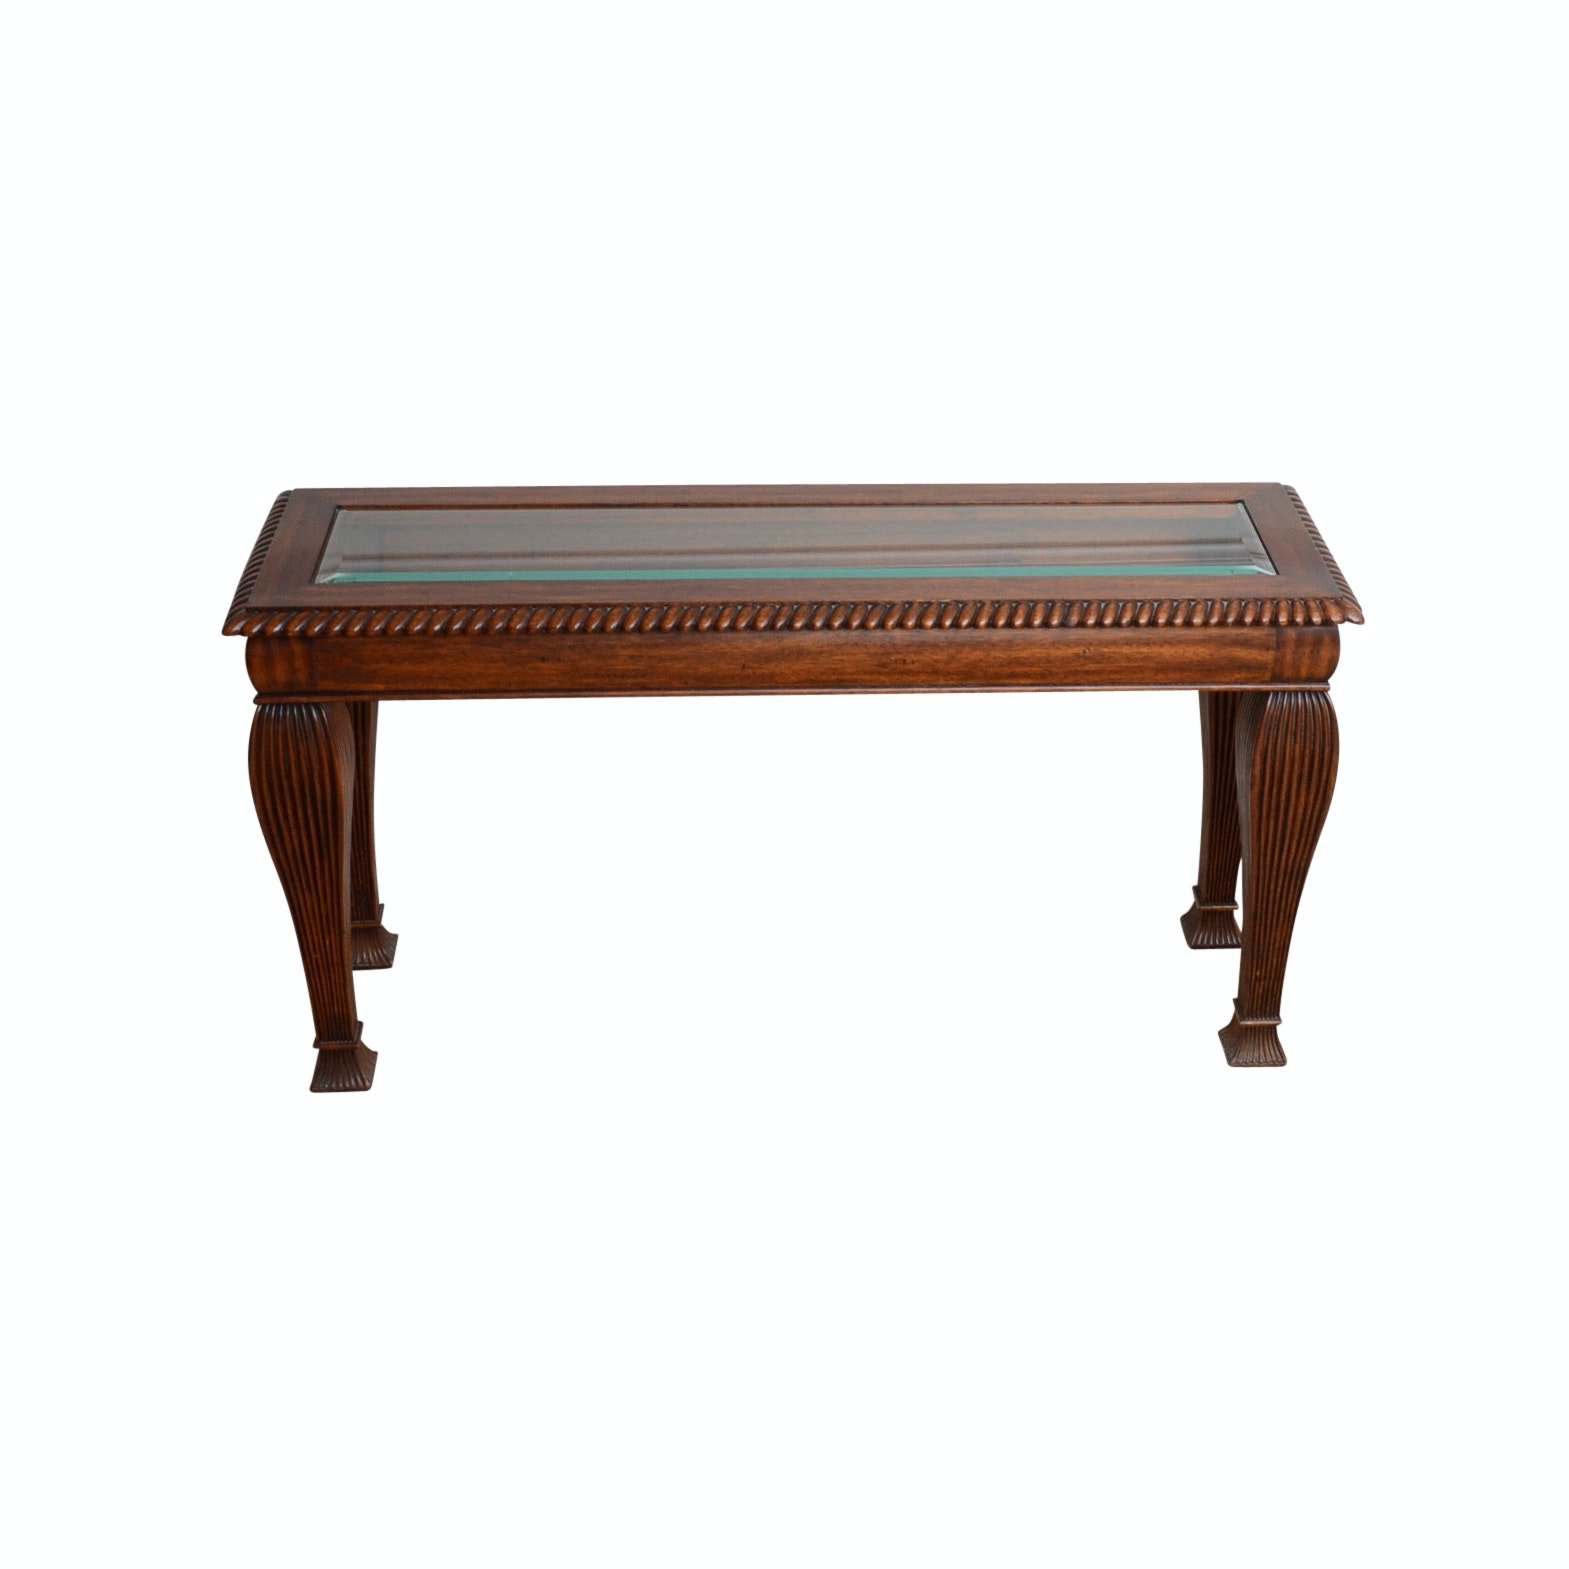 Sofa Table with Beveled Glass Top